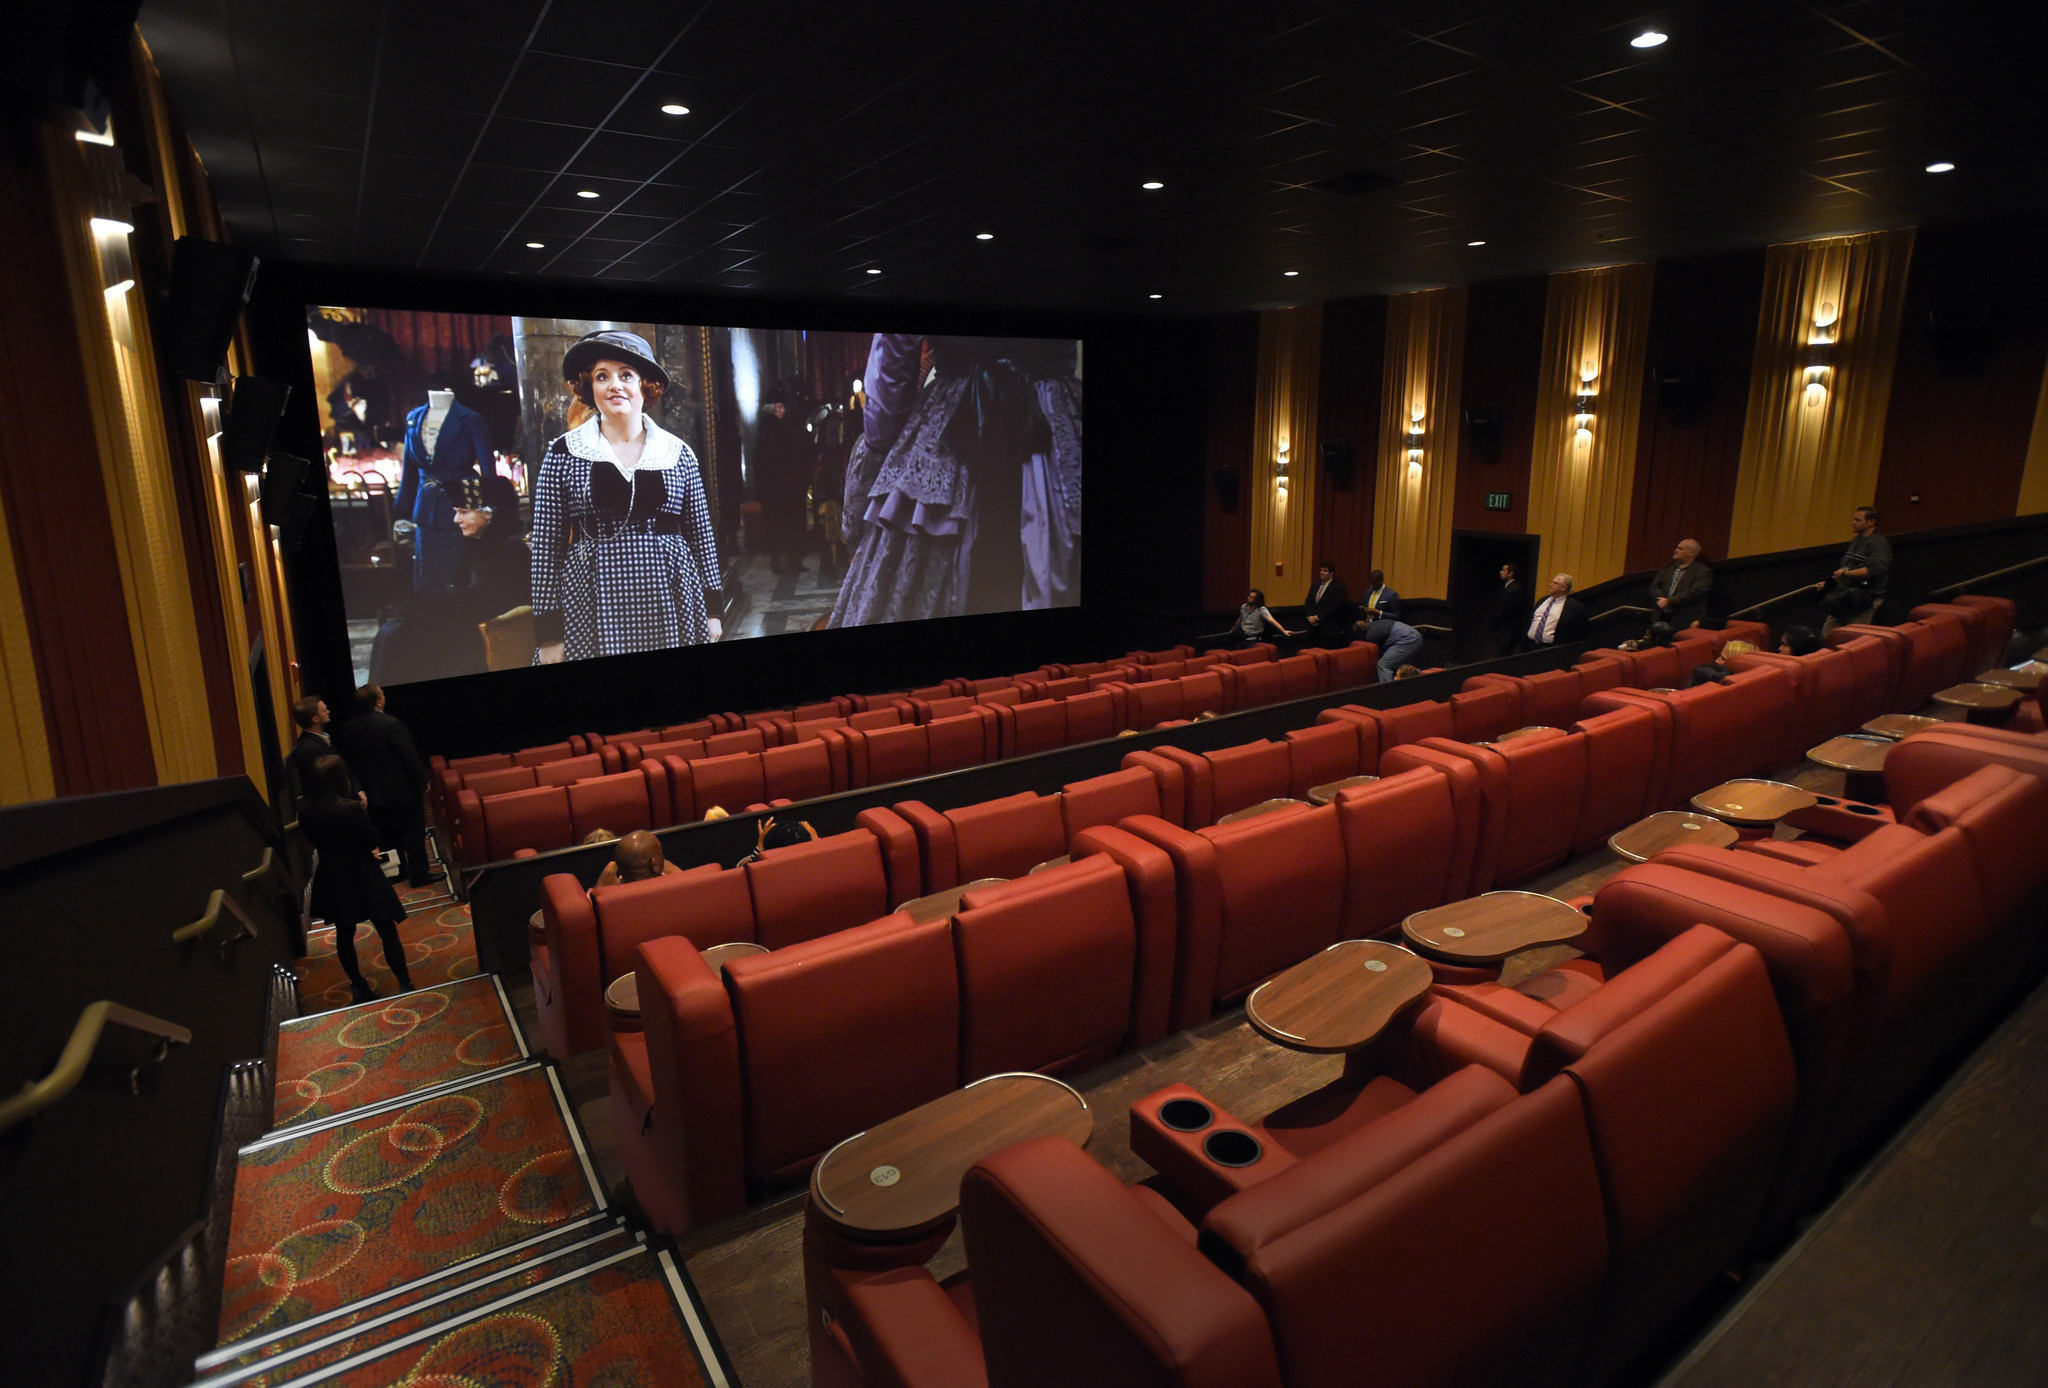 Coming Soon To Movie Theaters Near You Luxury Seating Upscale Dining And Ot